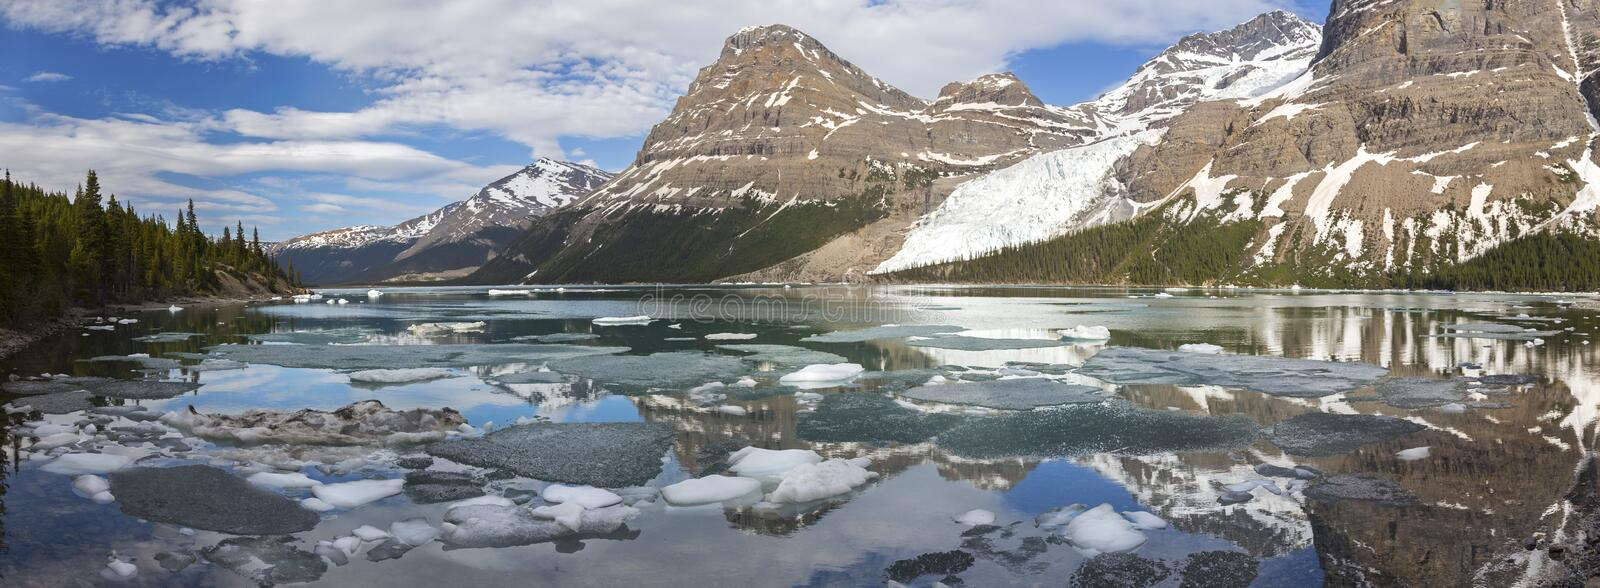 Berg Lake Panoramic Landscape View in Canadian Rocky Mountains stock images